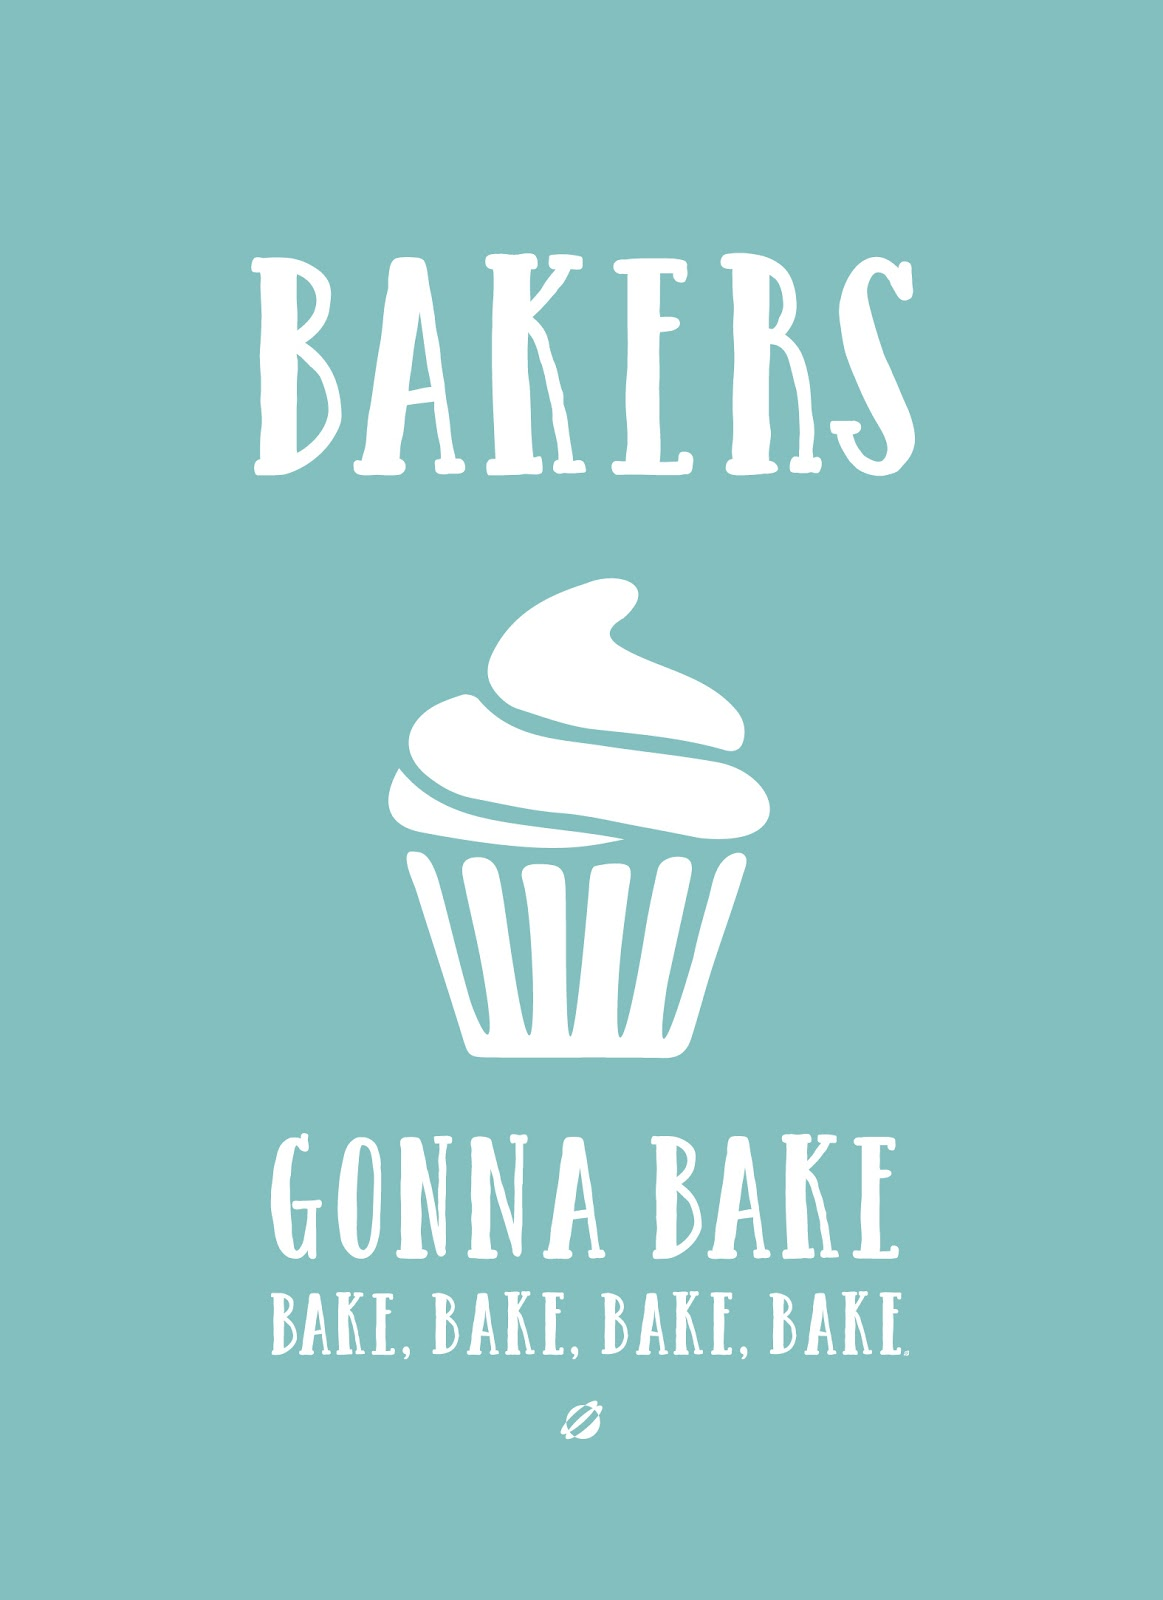 lbg2015bakers_gonna_bake-02.jpg